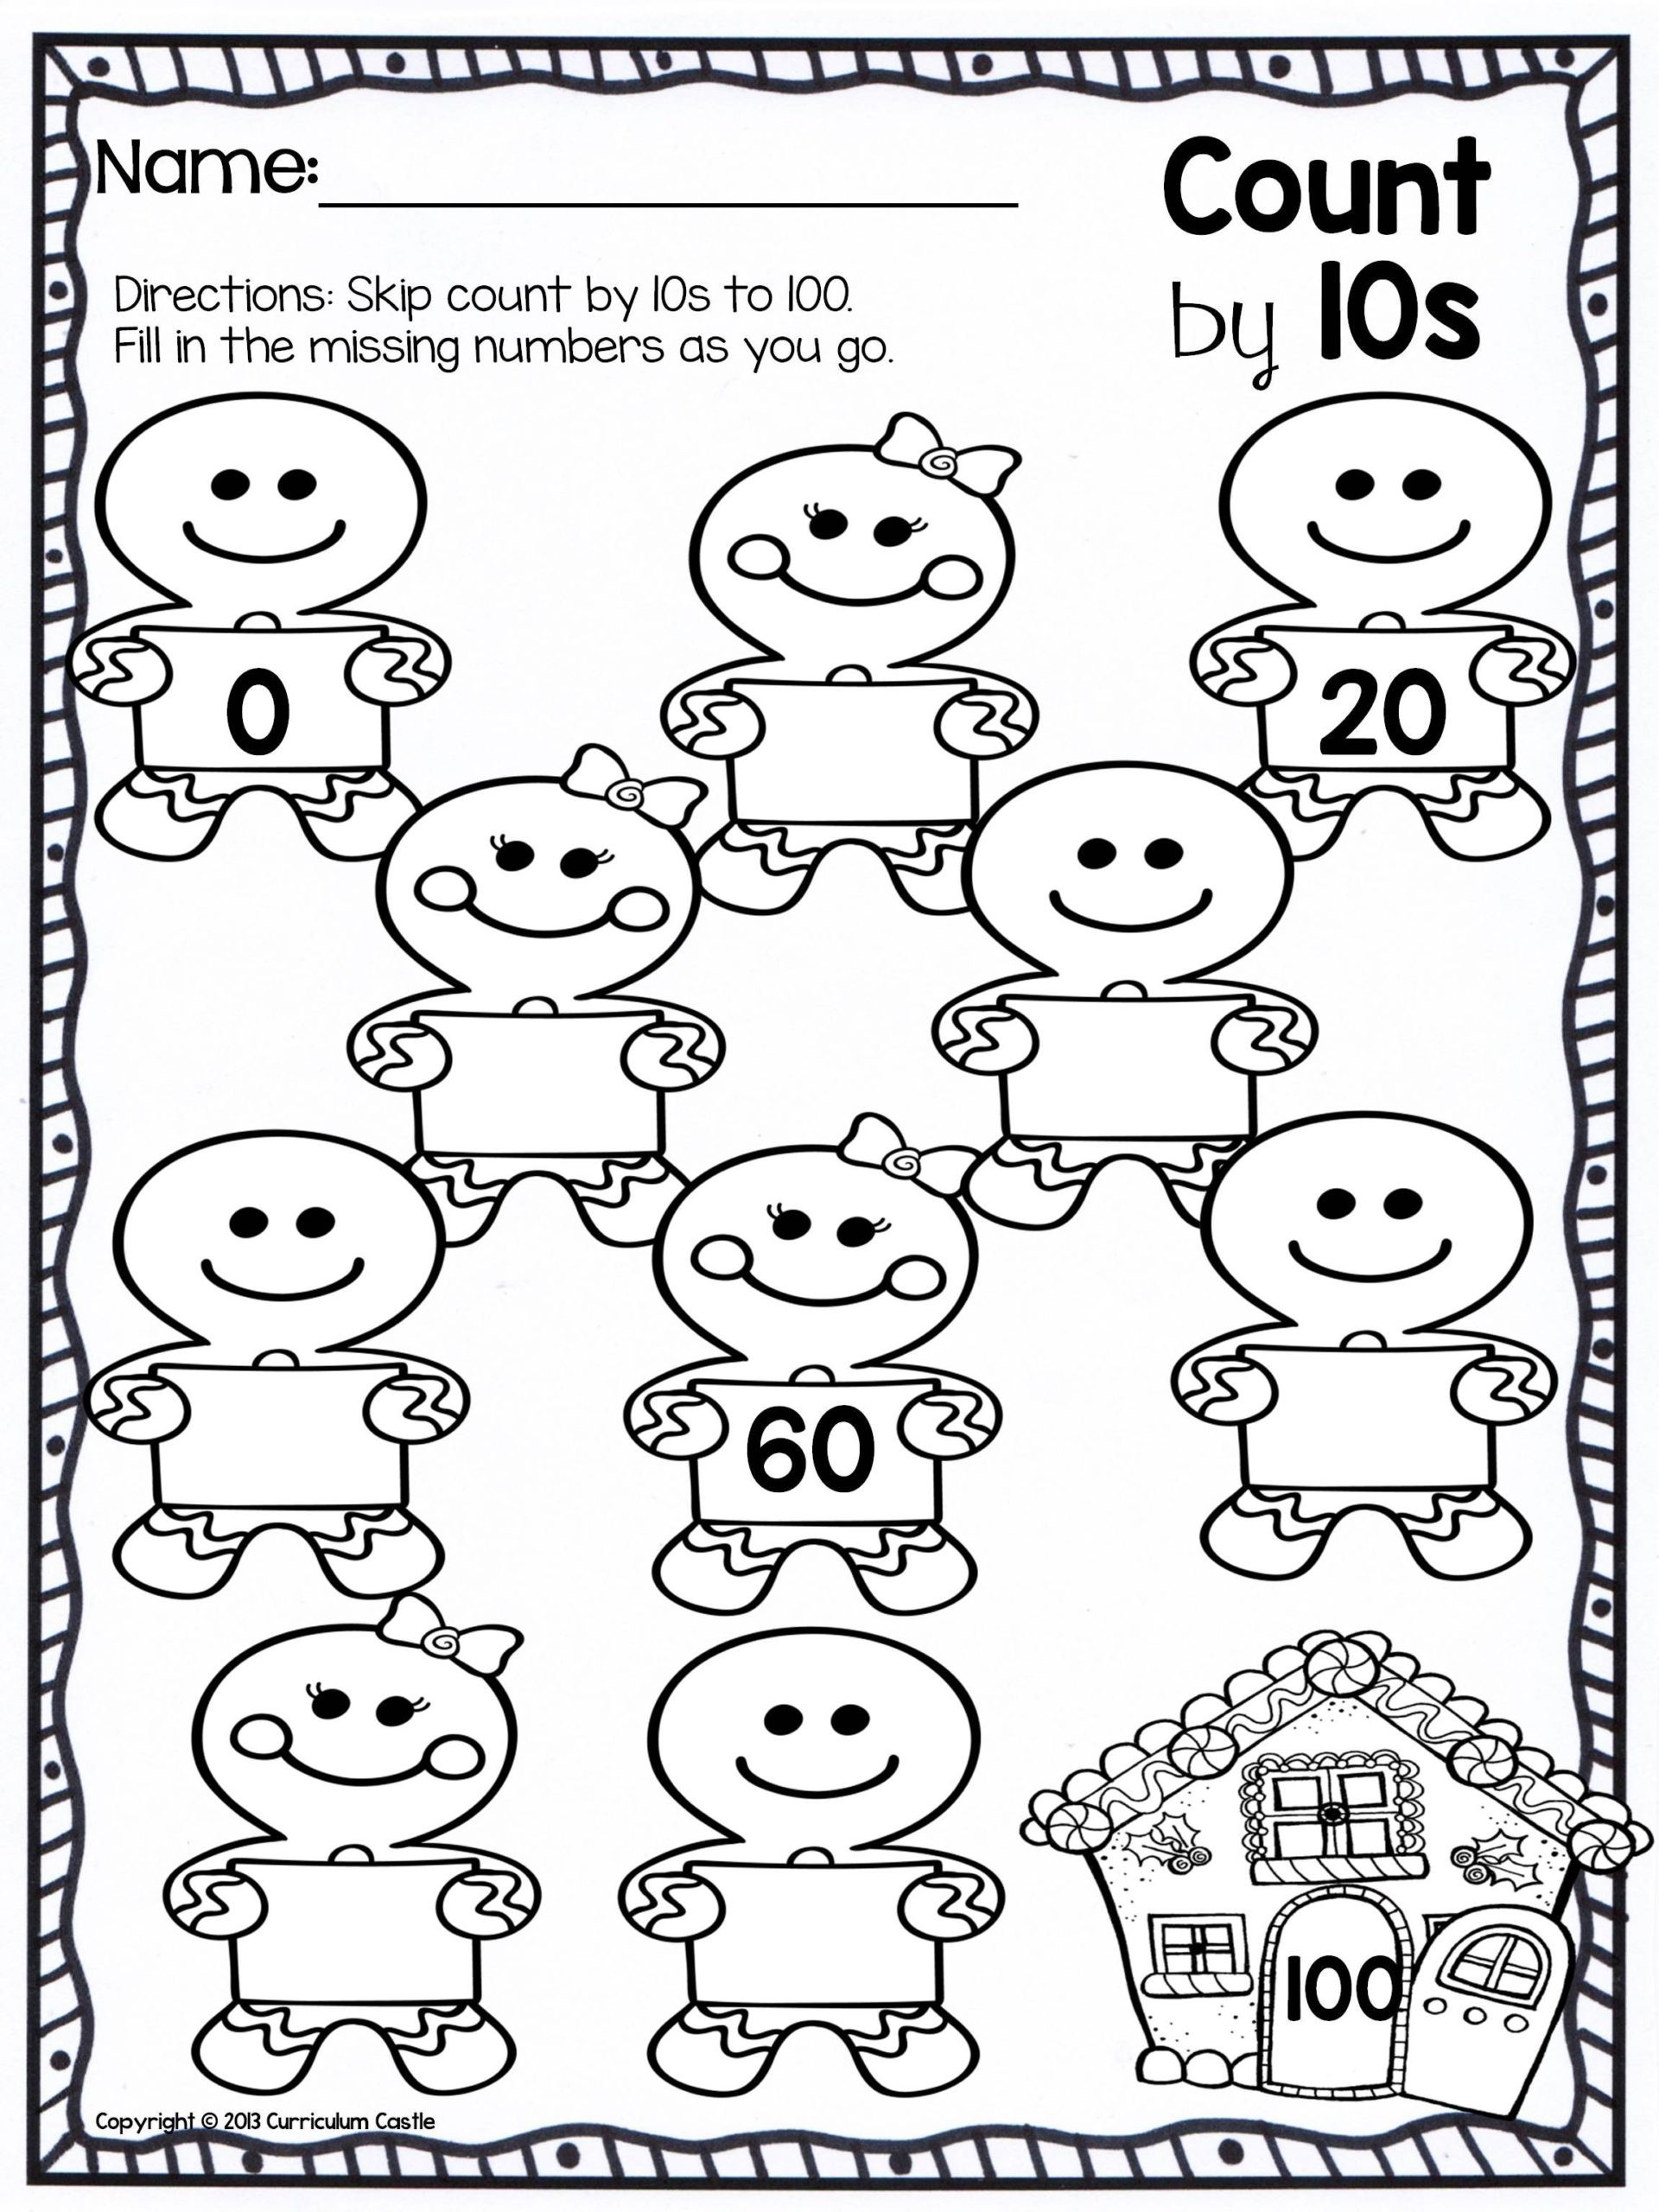 Alliteration Worksheets 4th Grade Good Math Questions Blank Handwriting Worksheets Nursing